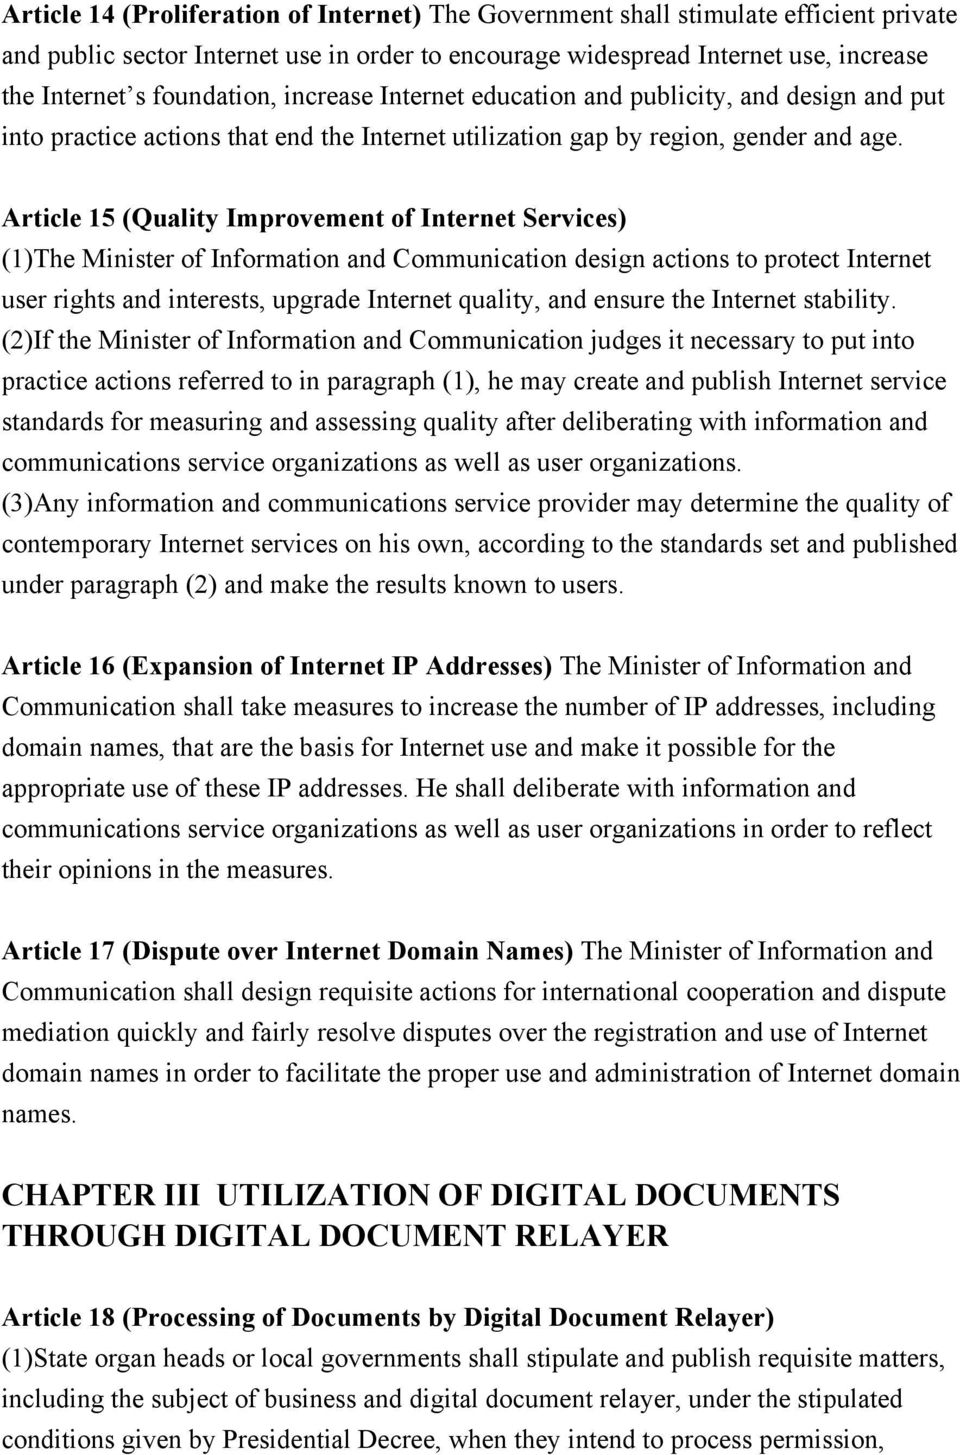 Article 15 (Quality Improvement of Internet Services) (1)The Minister of Information and Communication design actions to protect Internet user rights and interests, upgrade Internet quality, and